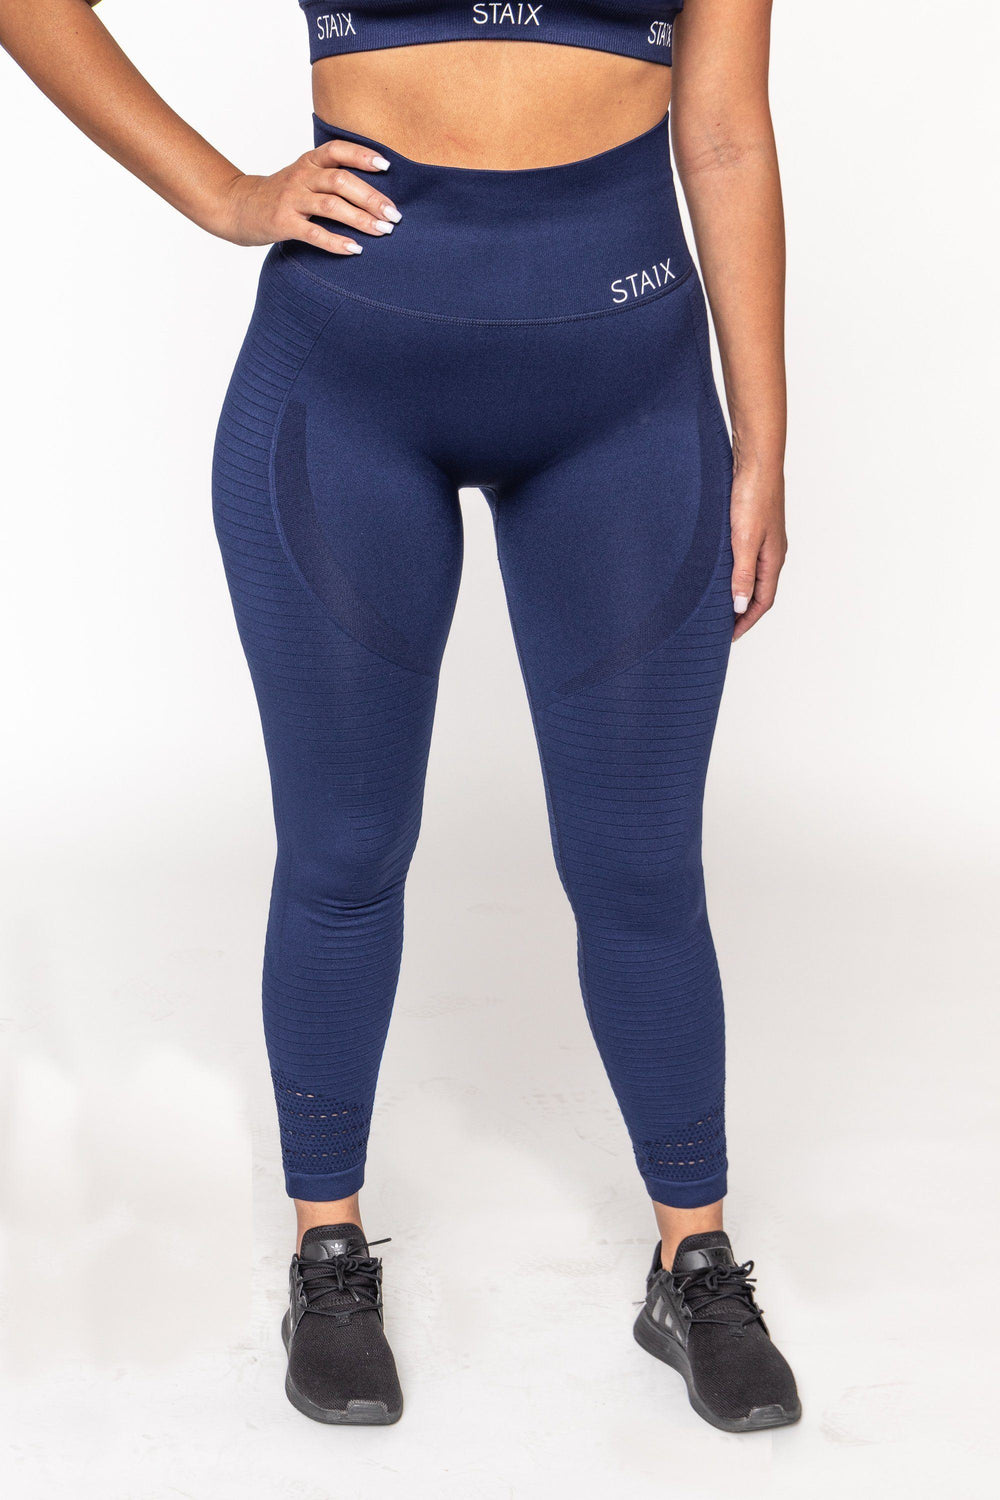 FORM LEGGINGS WOMEN'S LEGGINGS STAIX M NAVY